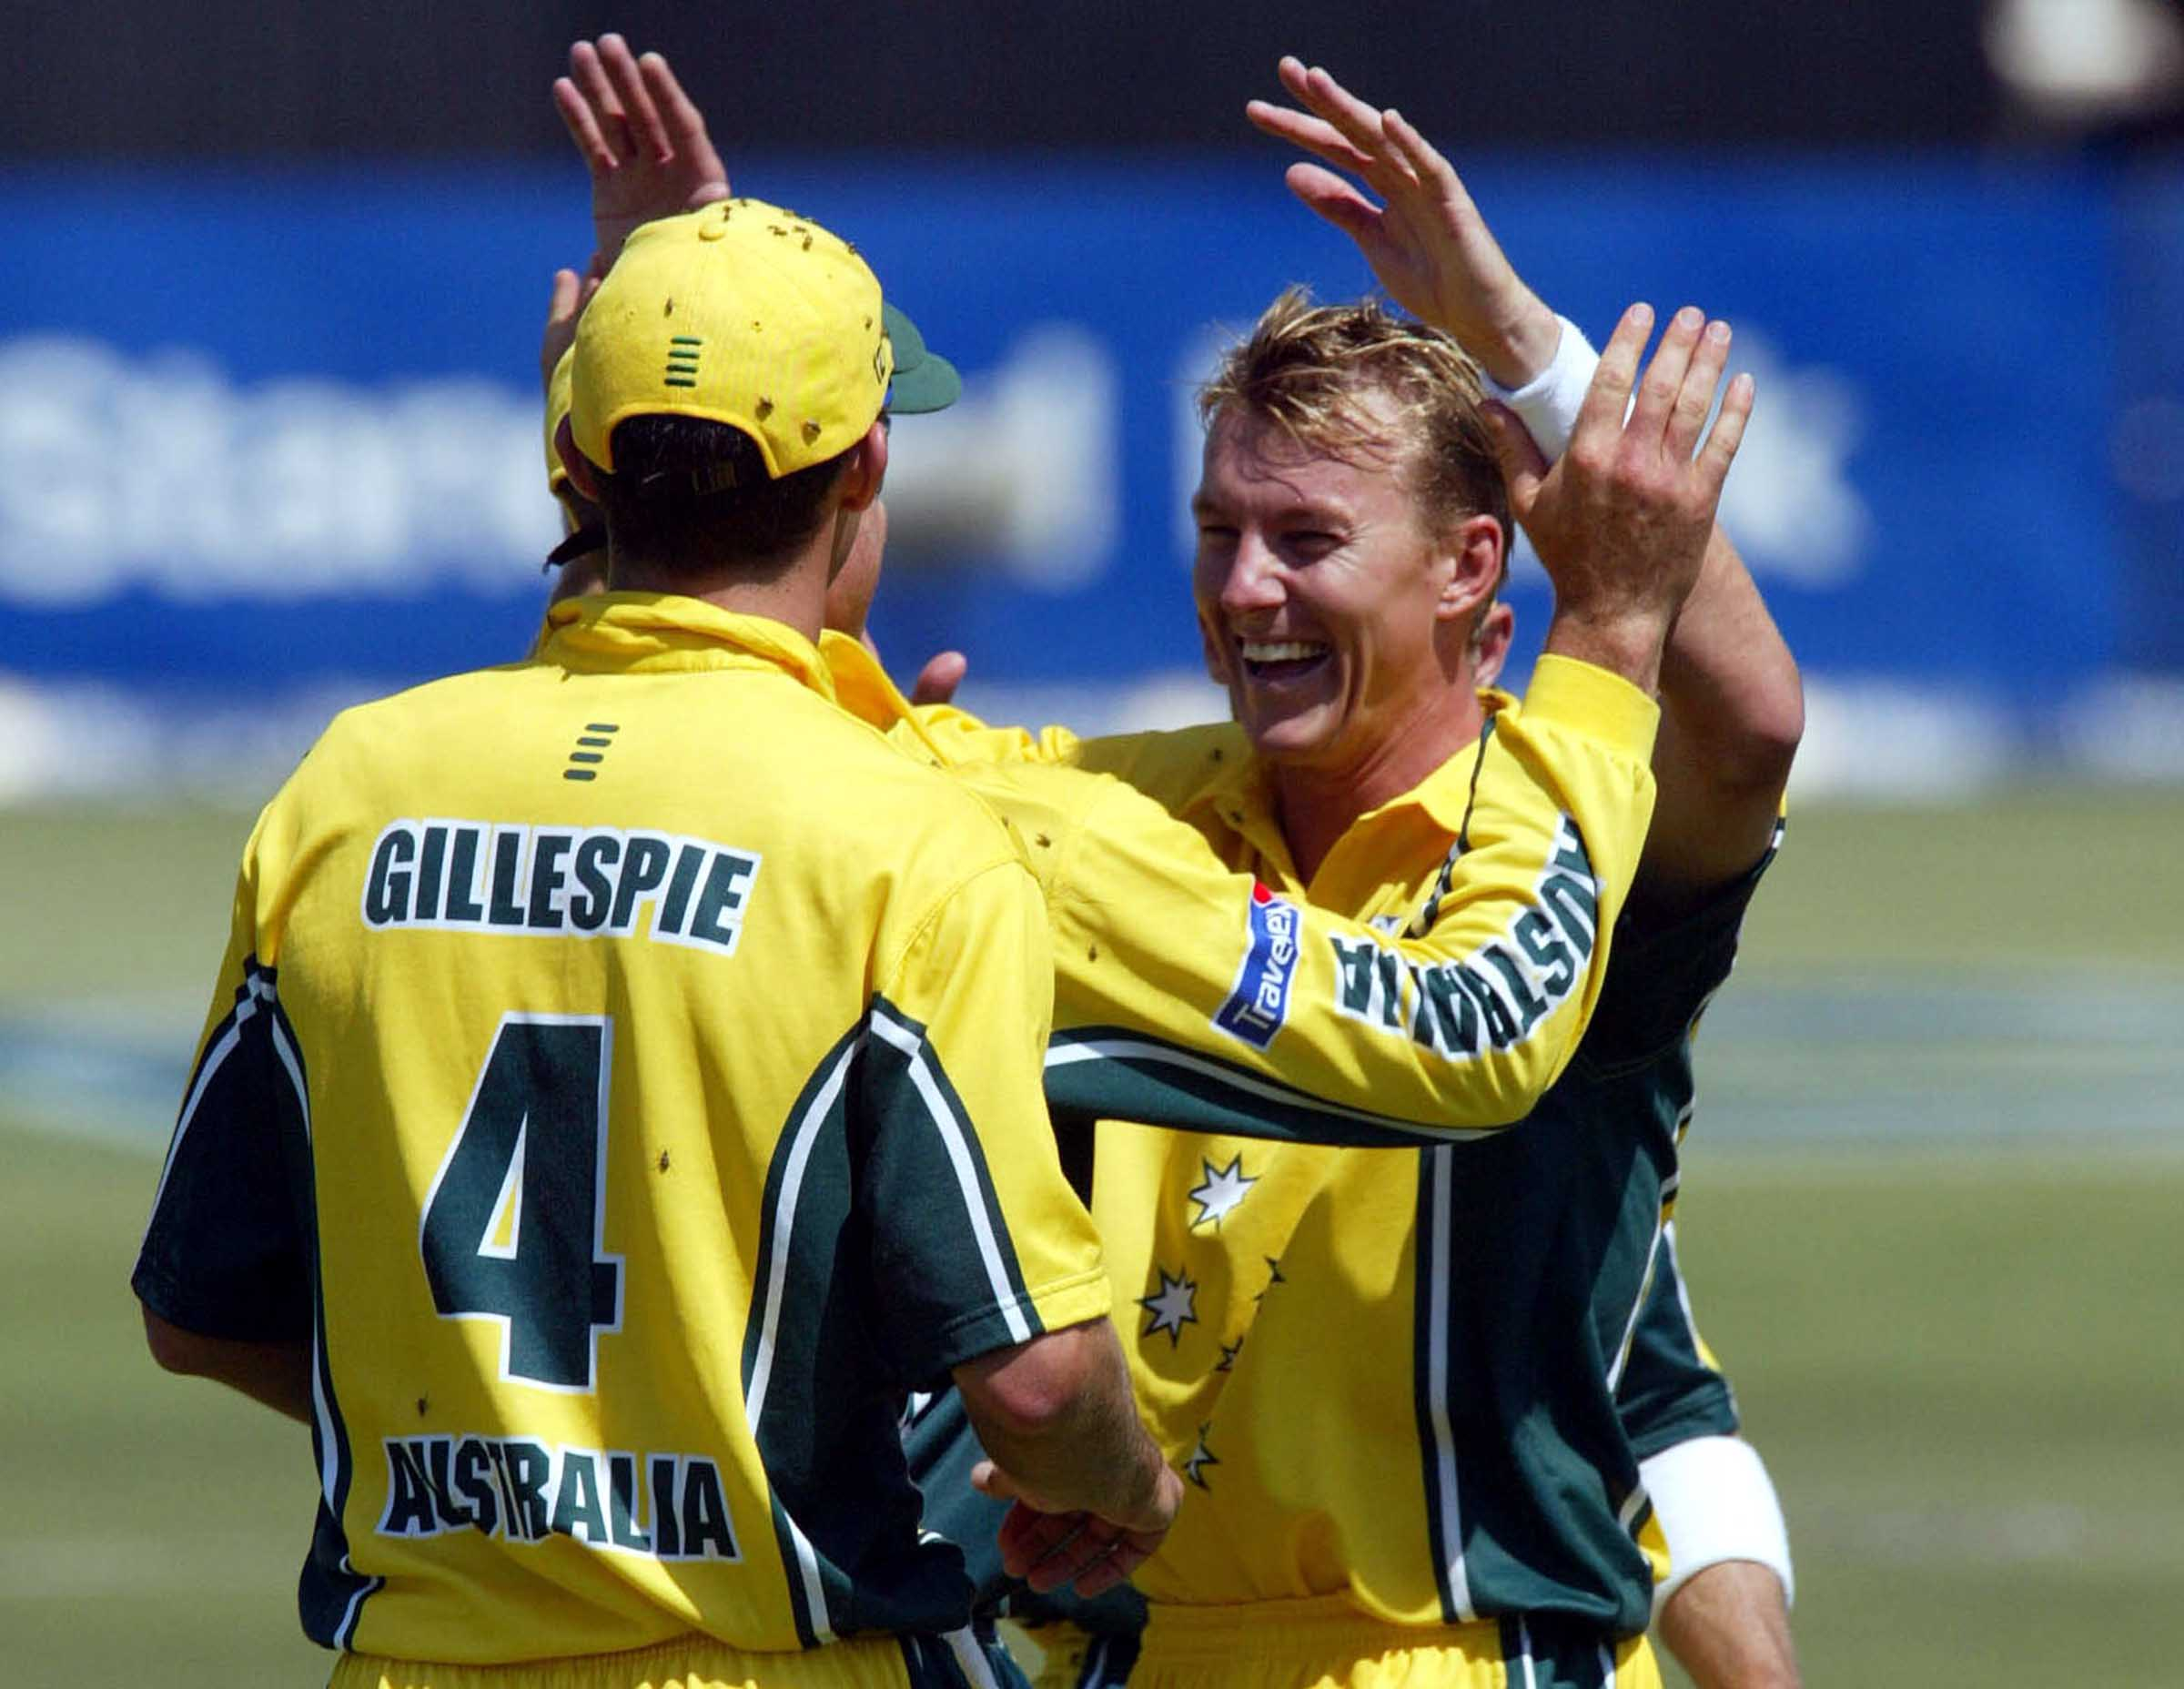 Brett Lee came into his own as an ODI bowler in 2002 // Getty